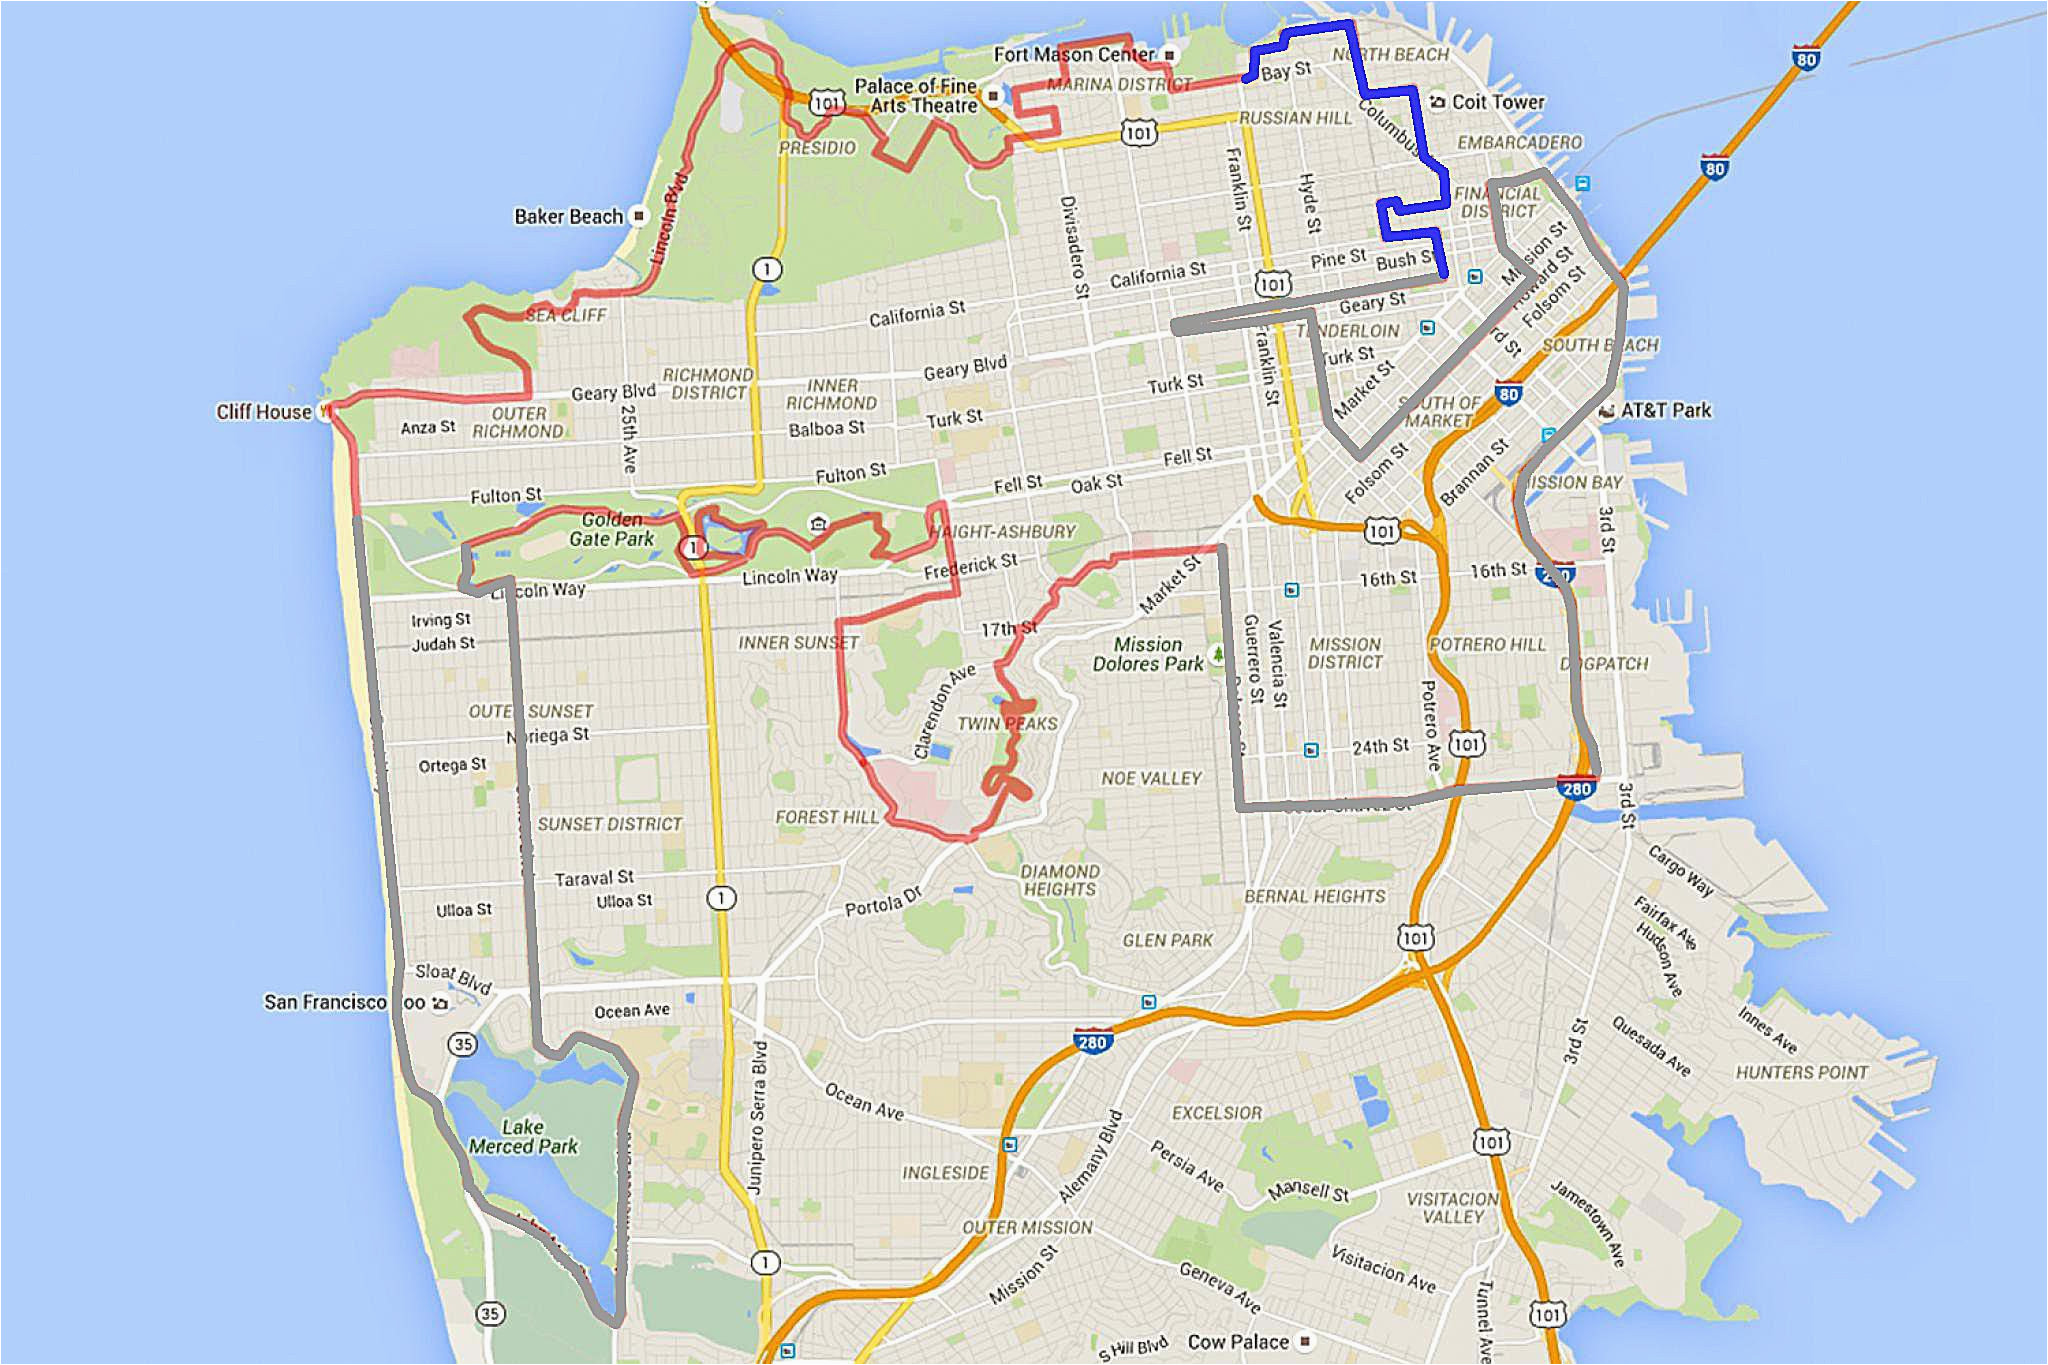 Charming California Google Maps 49 Mile Drive In San Francisco What You Need to Know